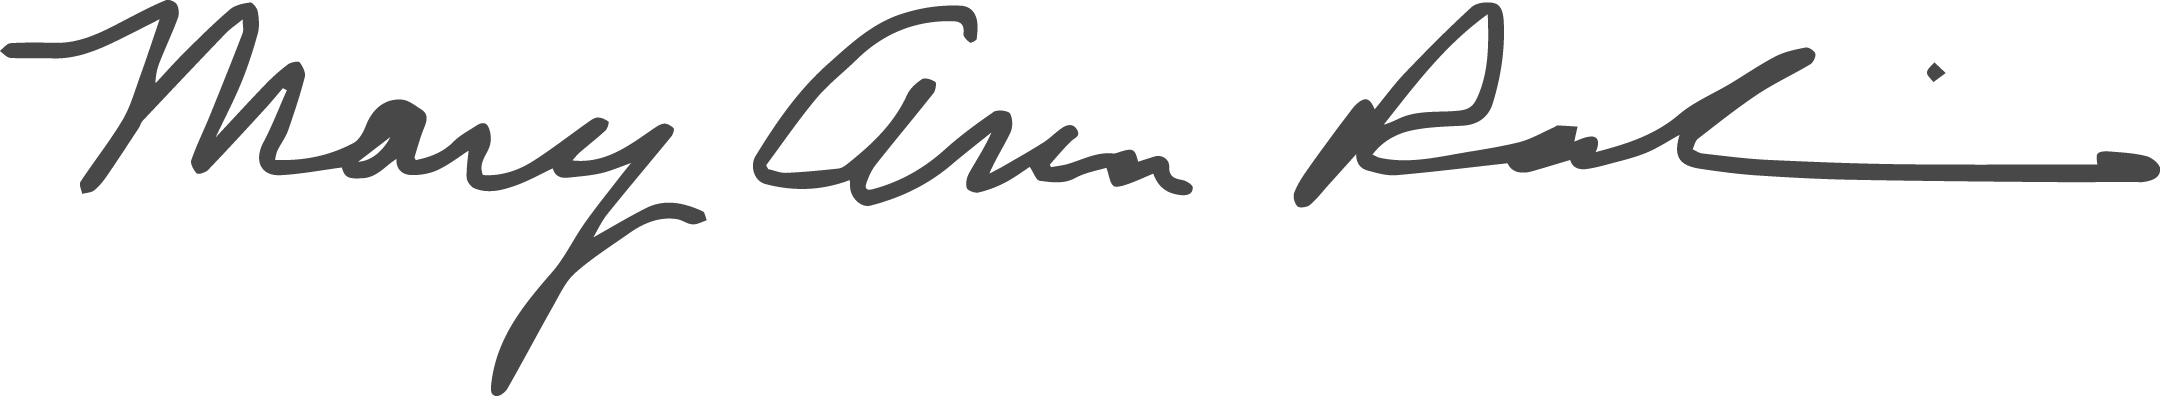 Mary Ann Rankin Signature